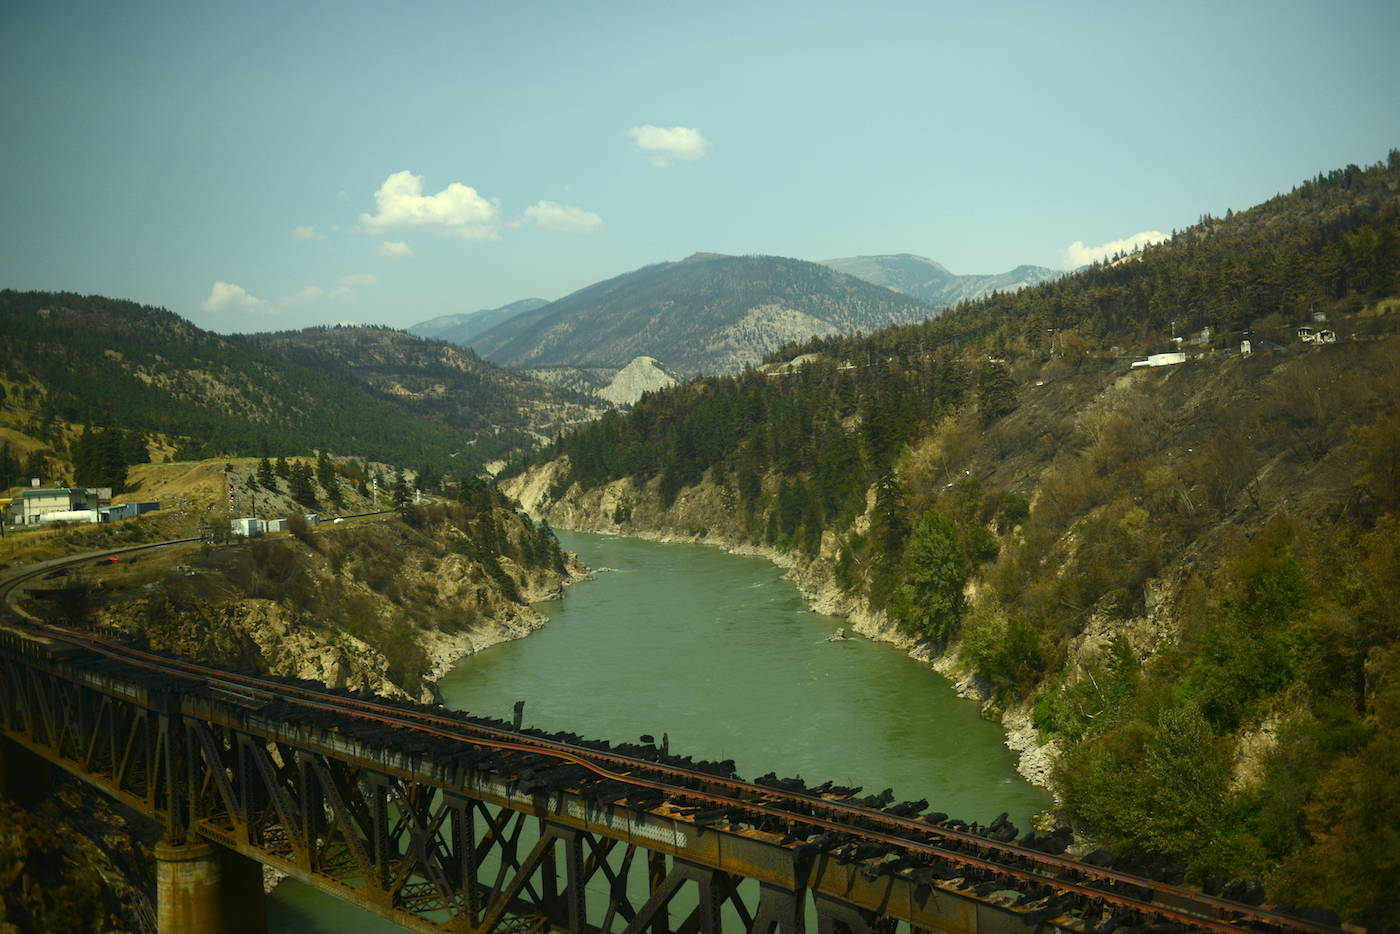 A railway bridge is seen burnt in Lytton, B.C. on Friday, July 9, 2021, nine days after a wildfire ripped through the village on June 30, 2021. (Jenna Hauck/ Black Press Media)